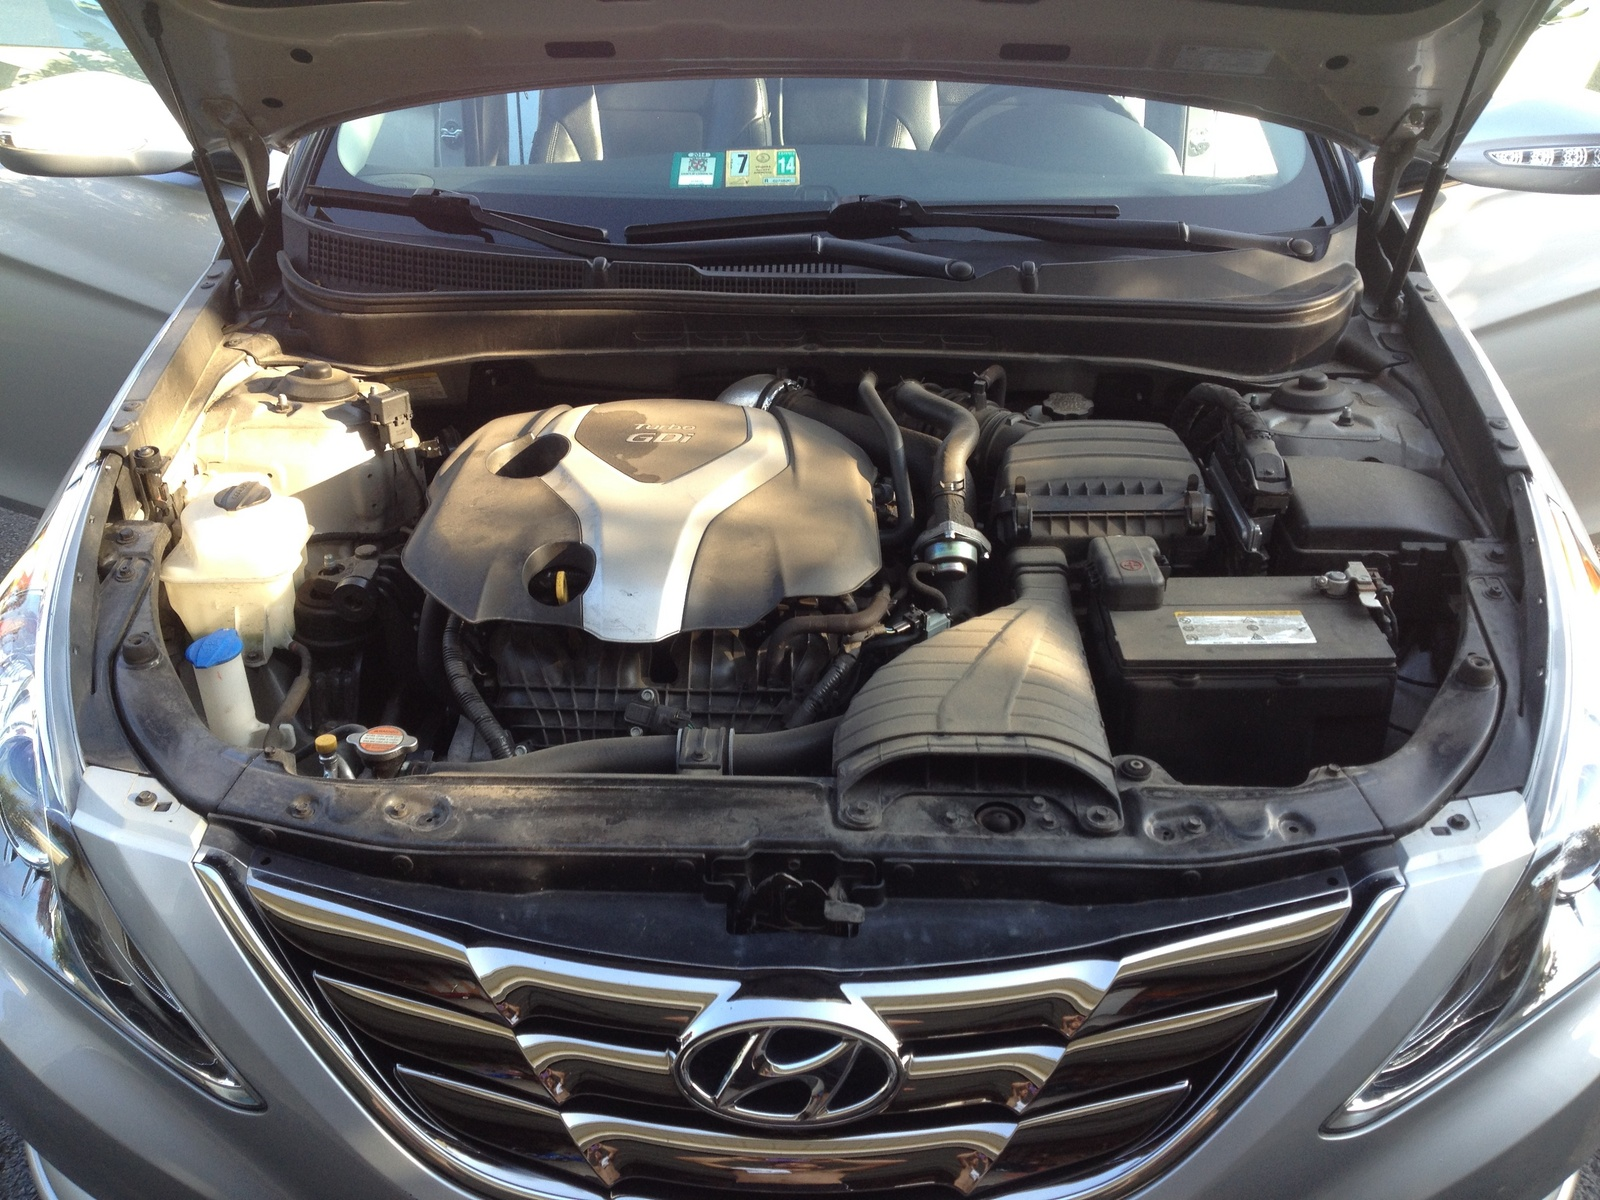 Picture of 2012 Hyundai Sonata 2.0T Limited, engine